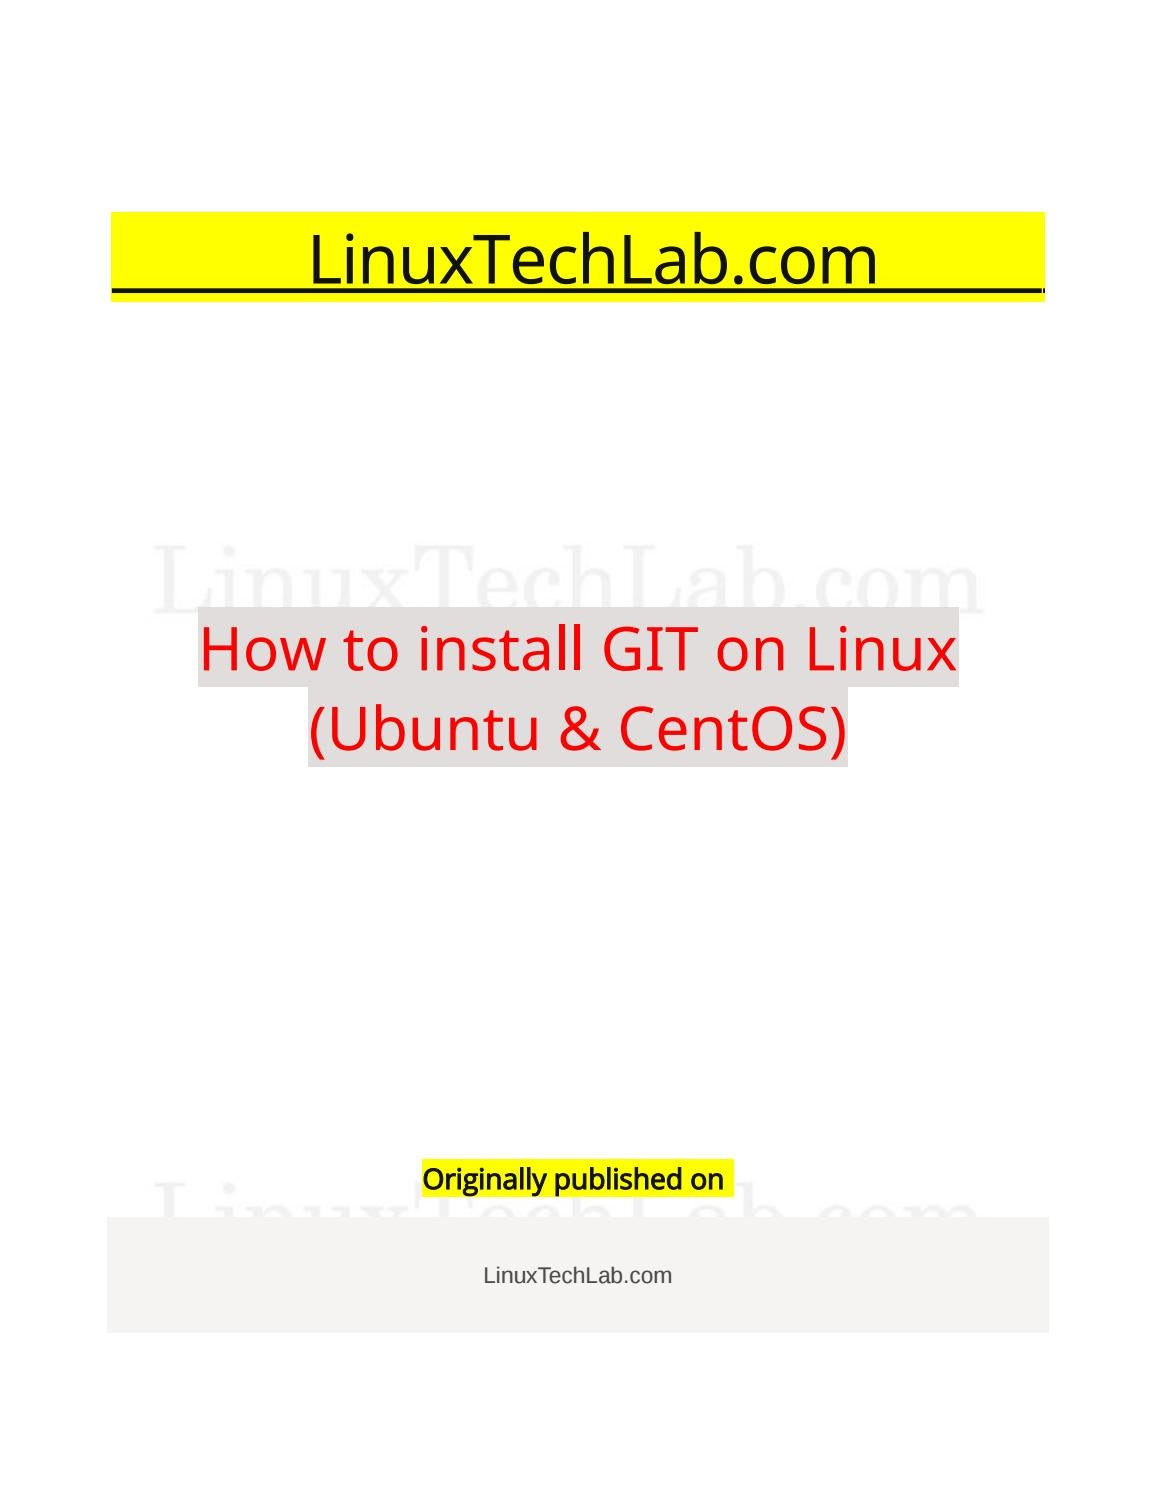 How to install git on linux (ubuntu & centos) by